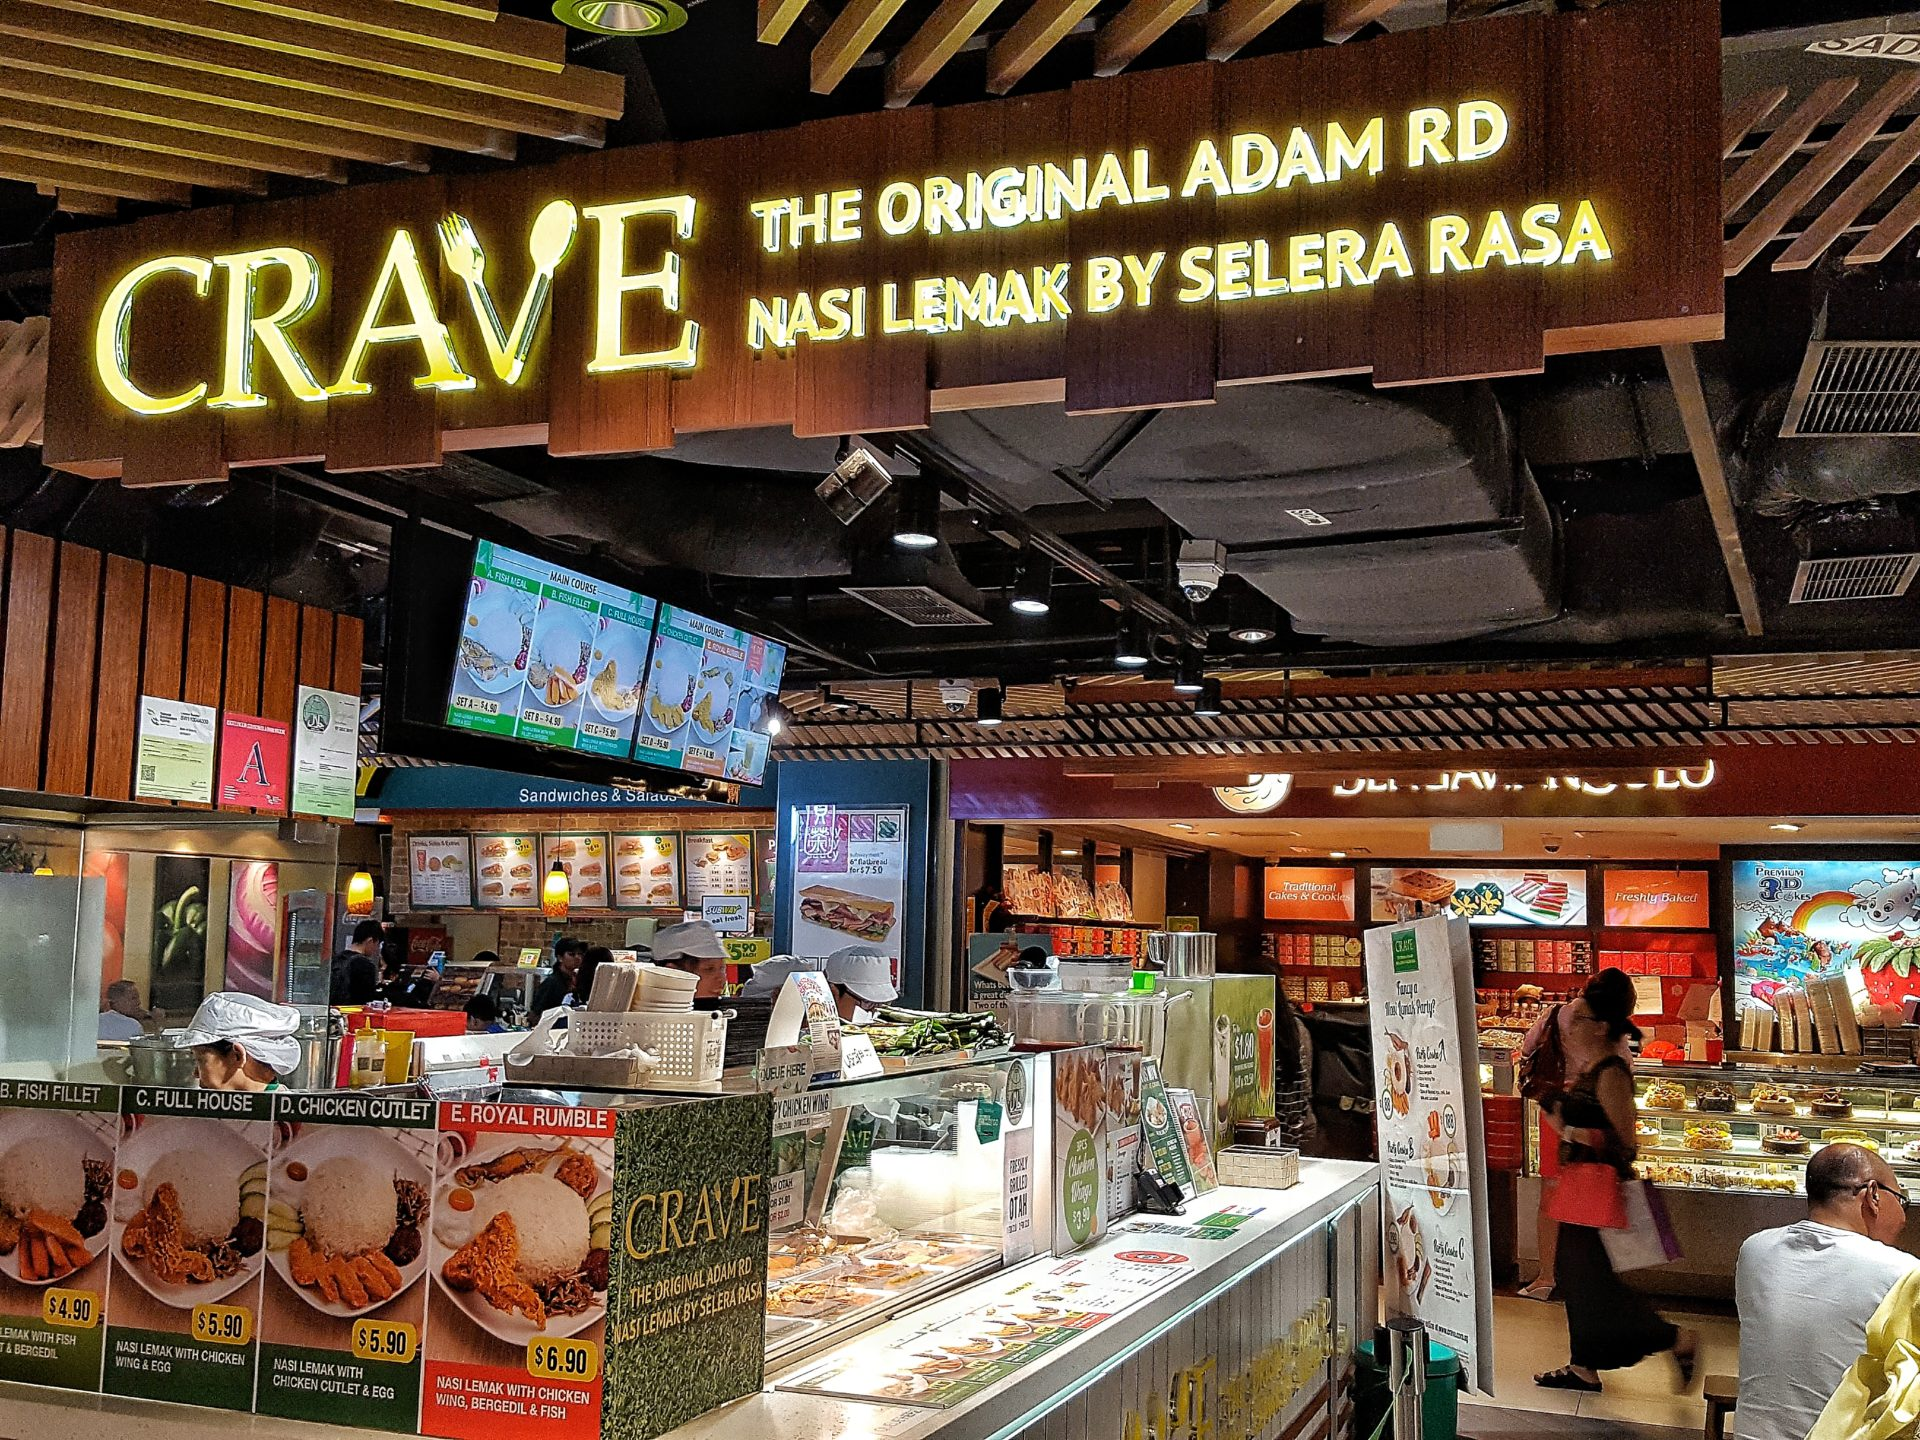 Crave @The Clementi Mall